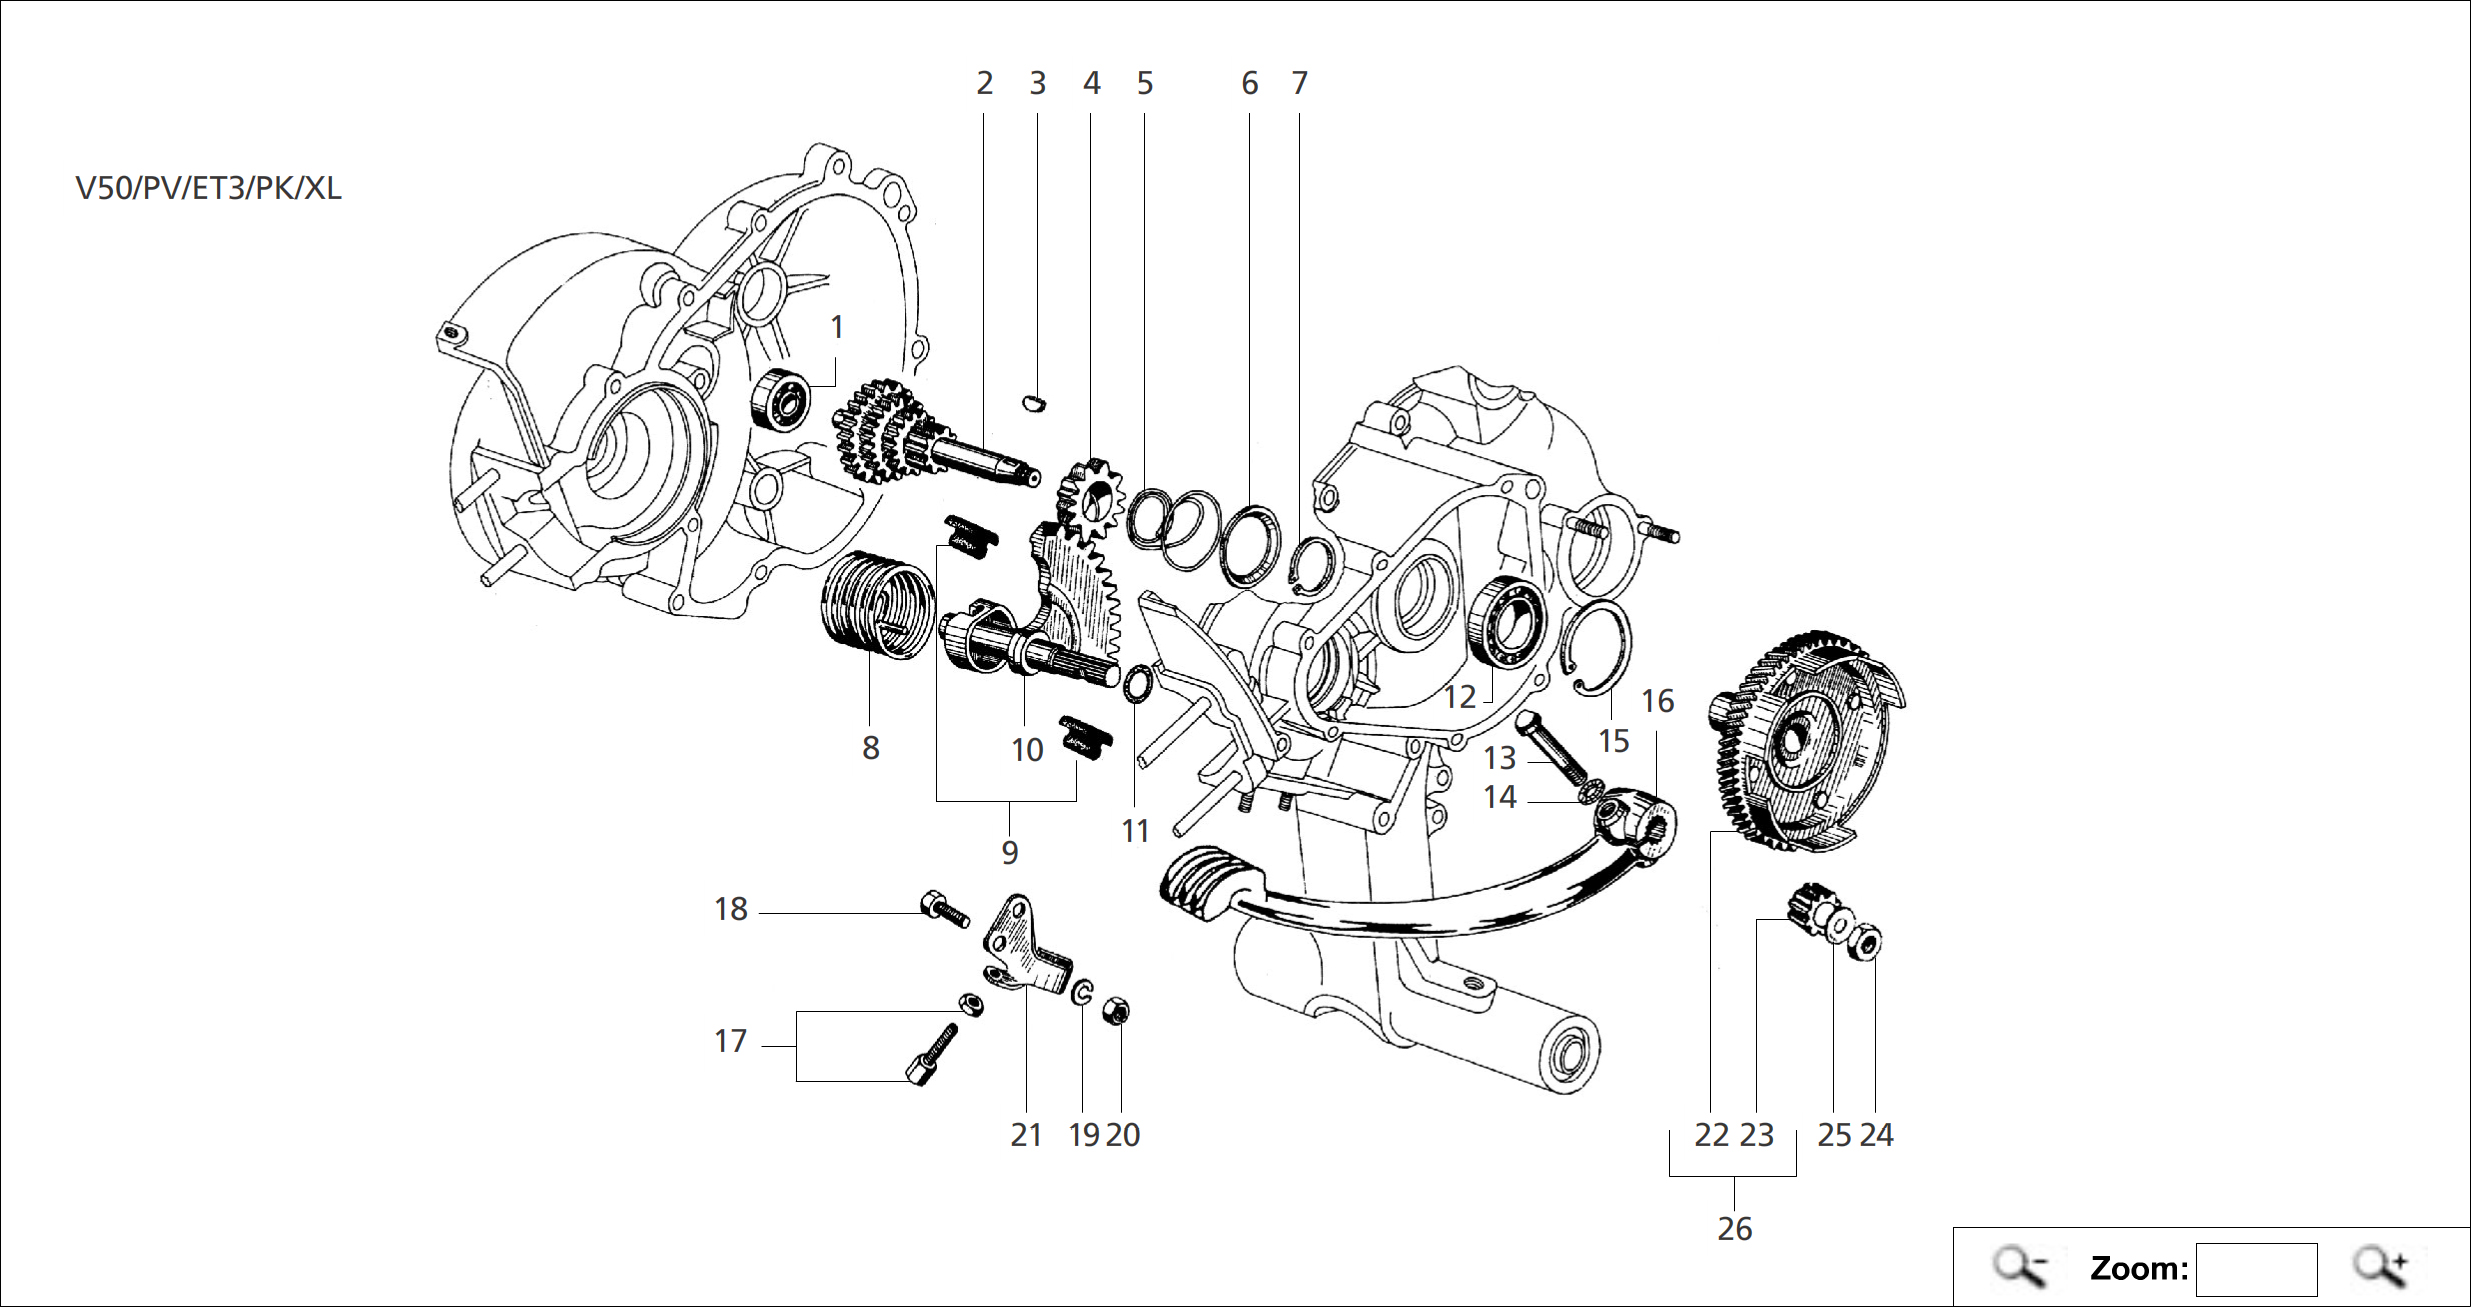 Direct Shift Gearbox Diagram Wiring Diagrams Manual And Fuse Box Semi Truck Transmission Patterns